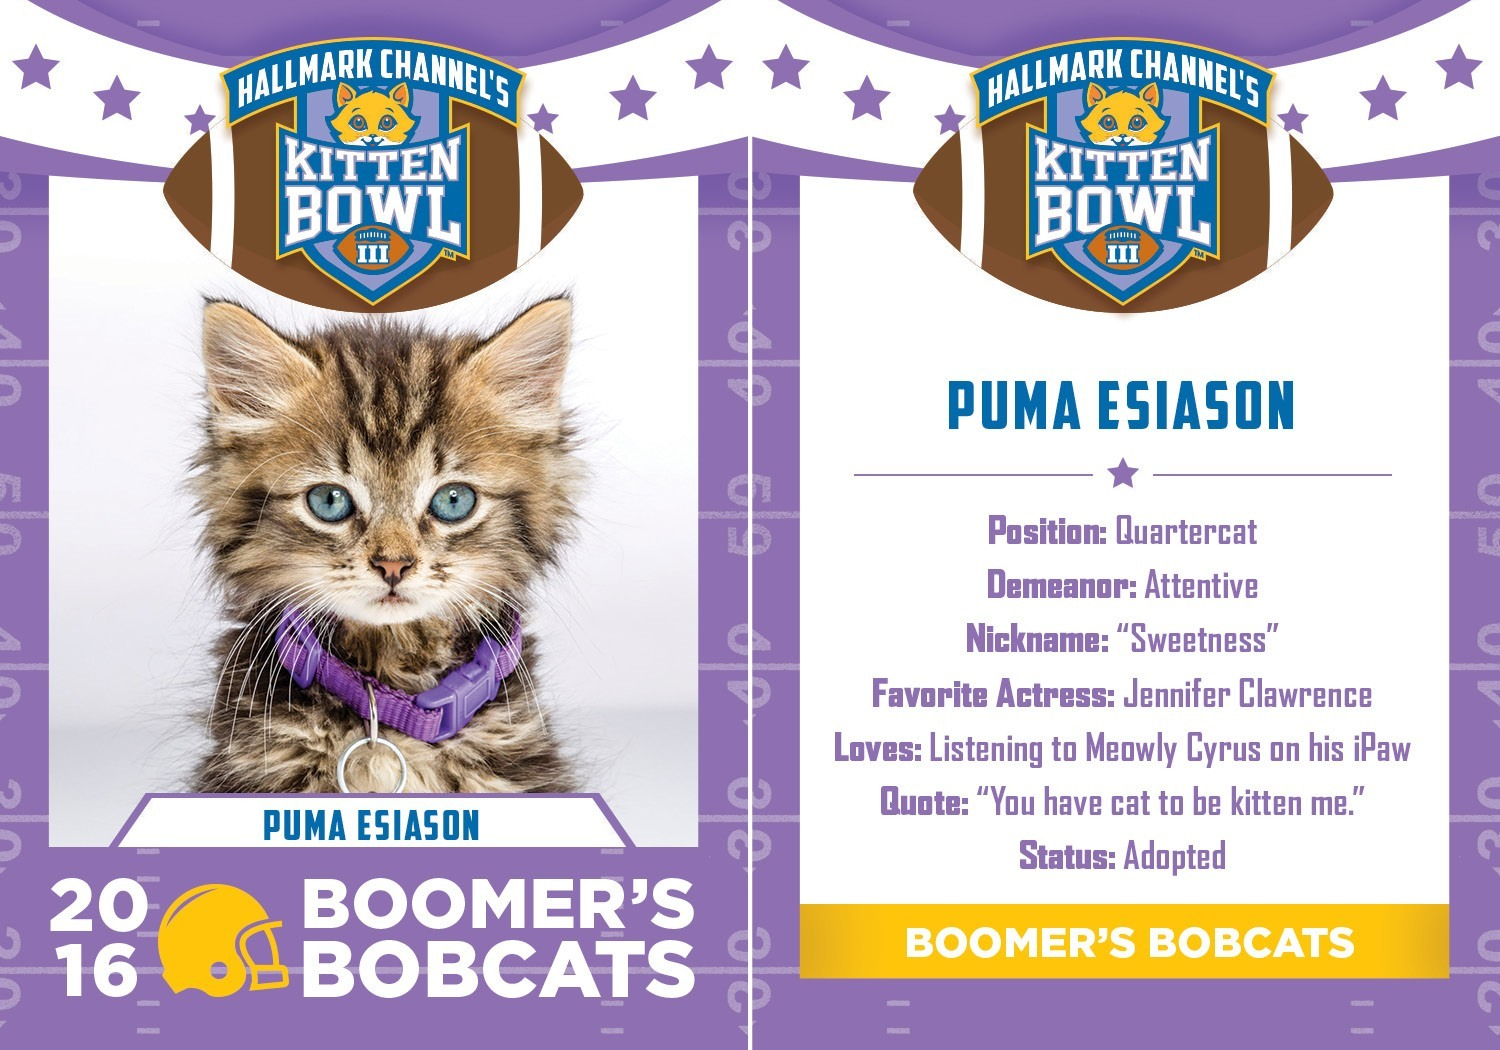 Kitten Bowl III takes on Super Bowl 50 beth stern 2016